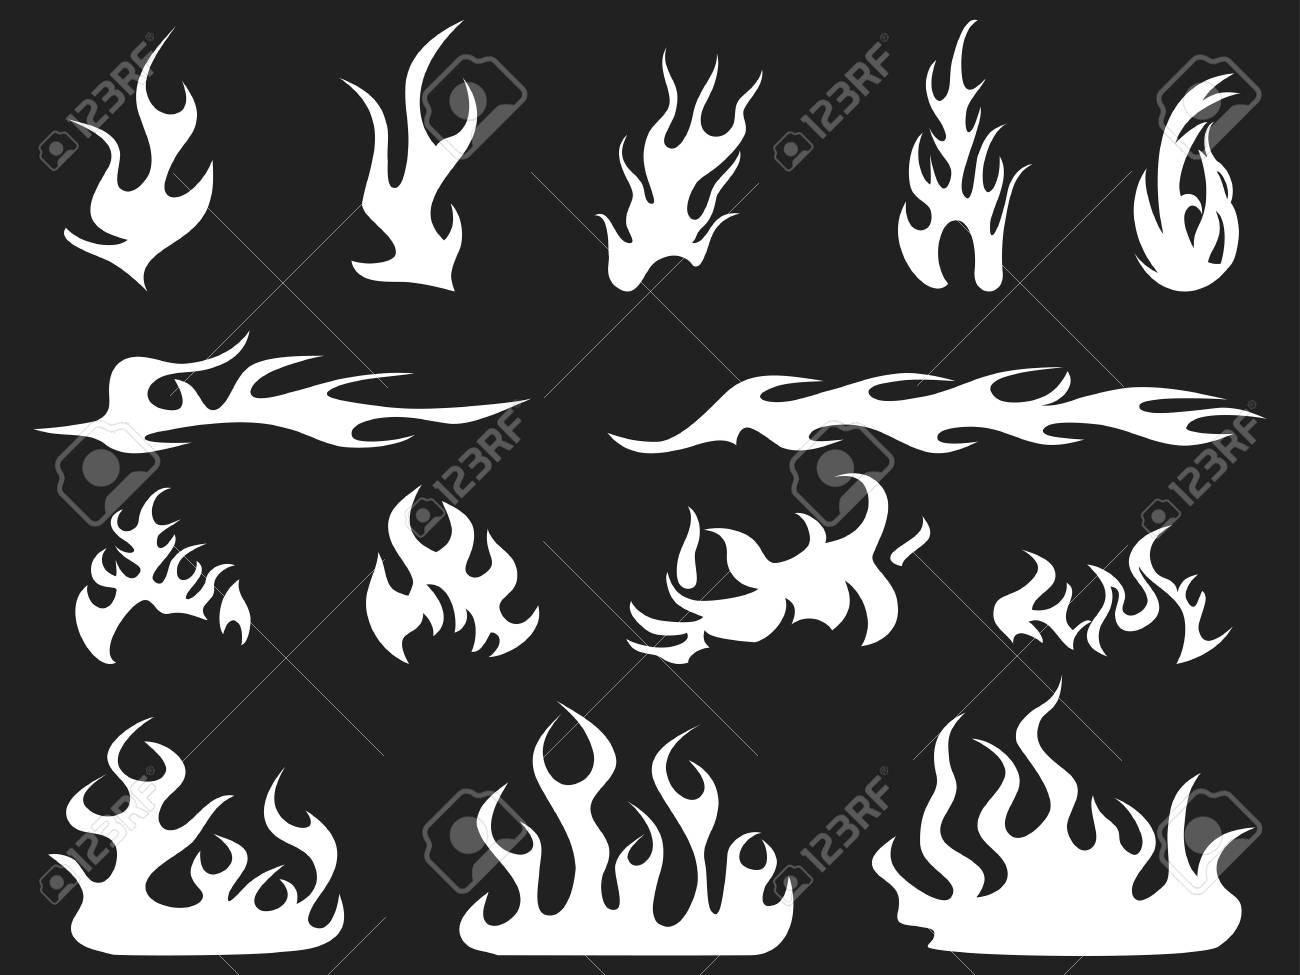 Isolated abstract white fire patterns on black background.